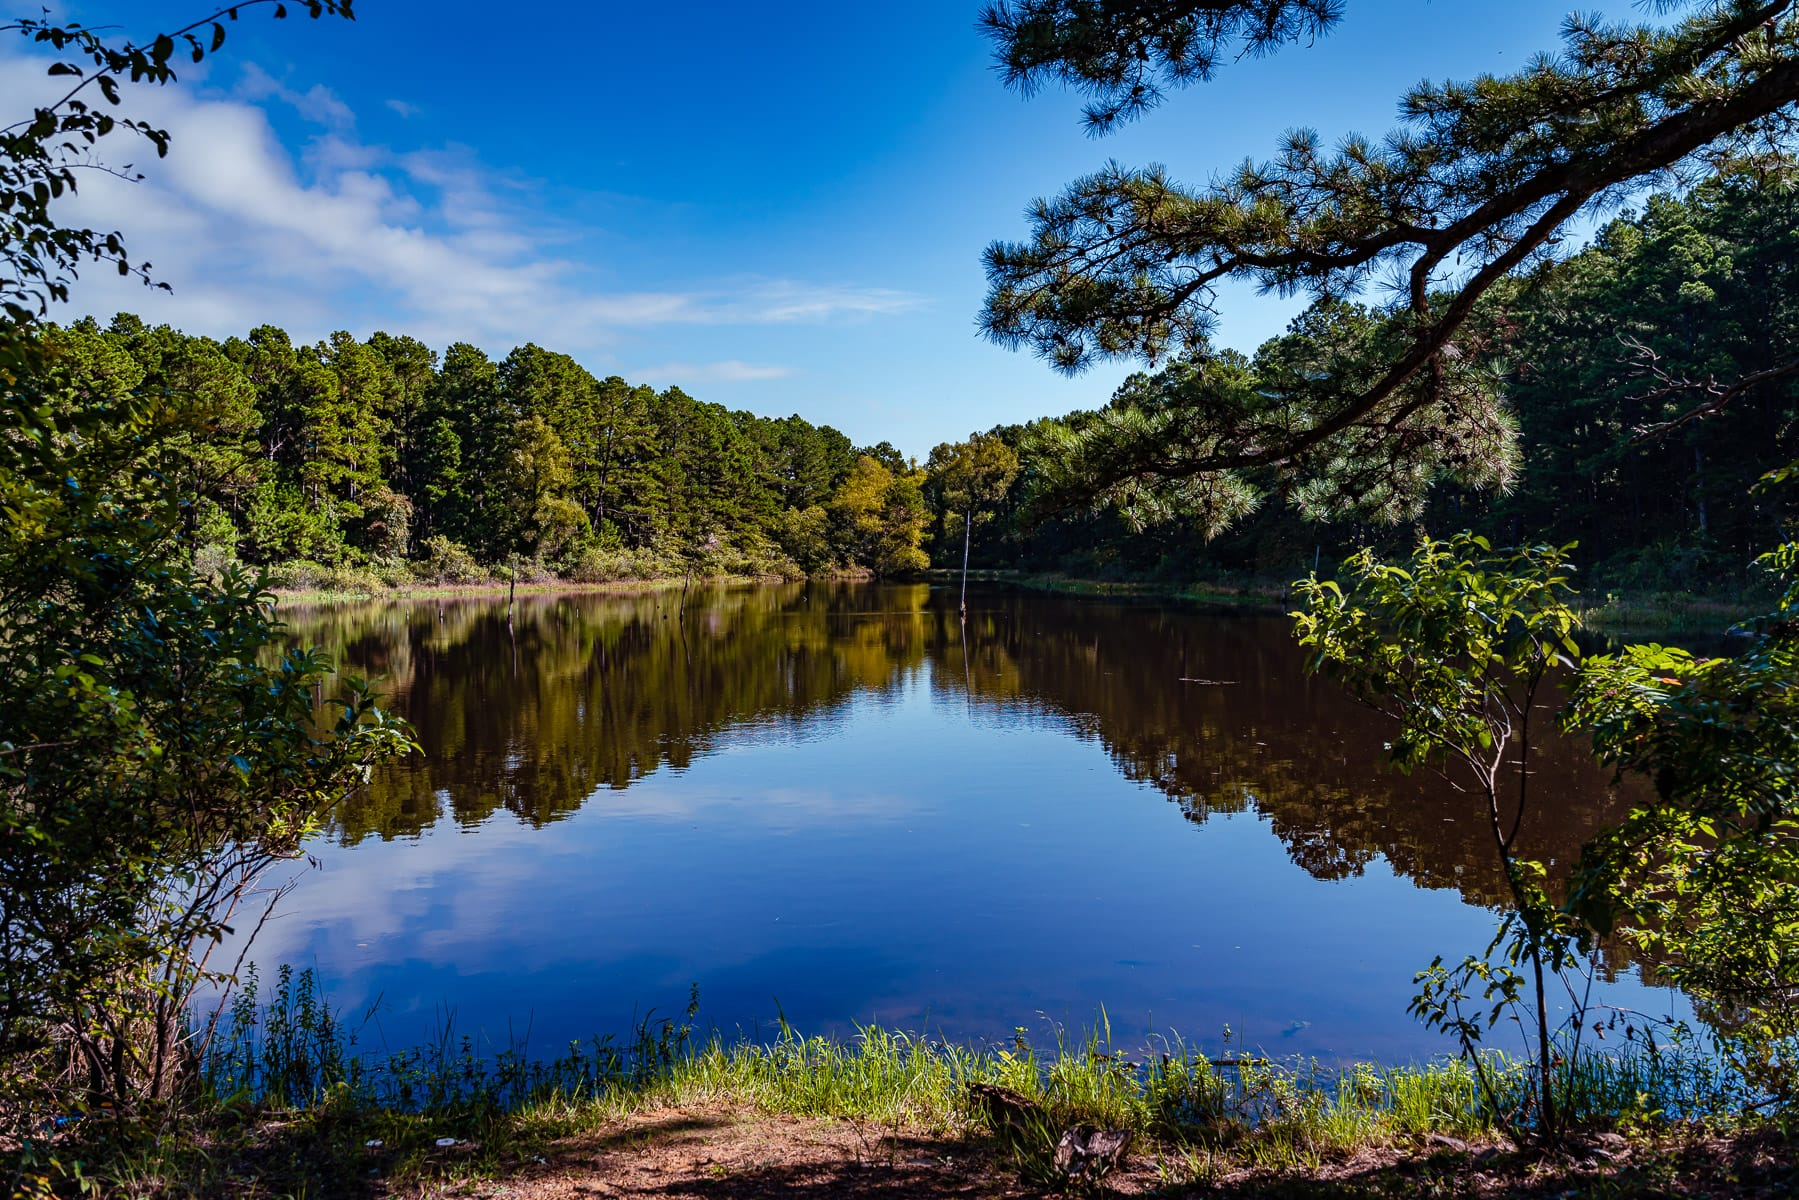 The tranquil waters of a pond at Oklahoma's McGee Creek State Park.